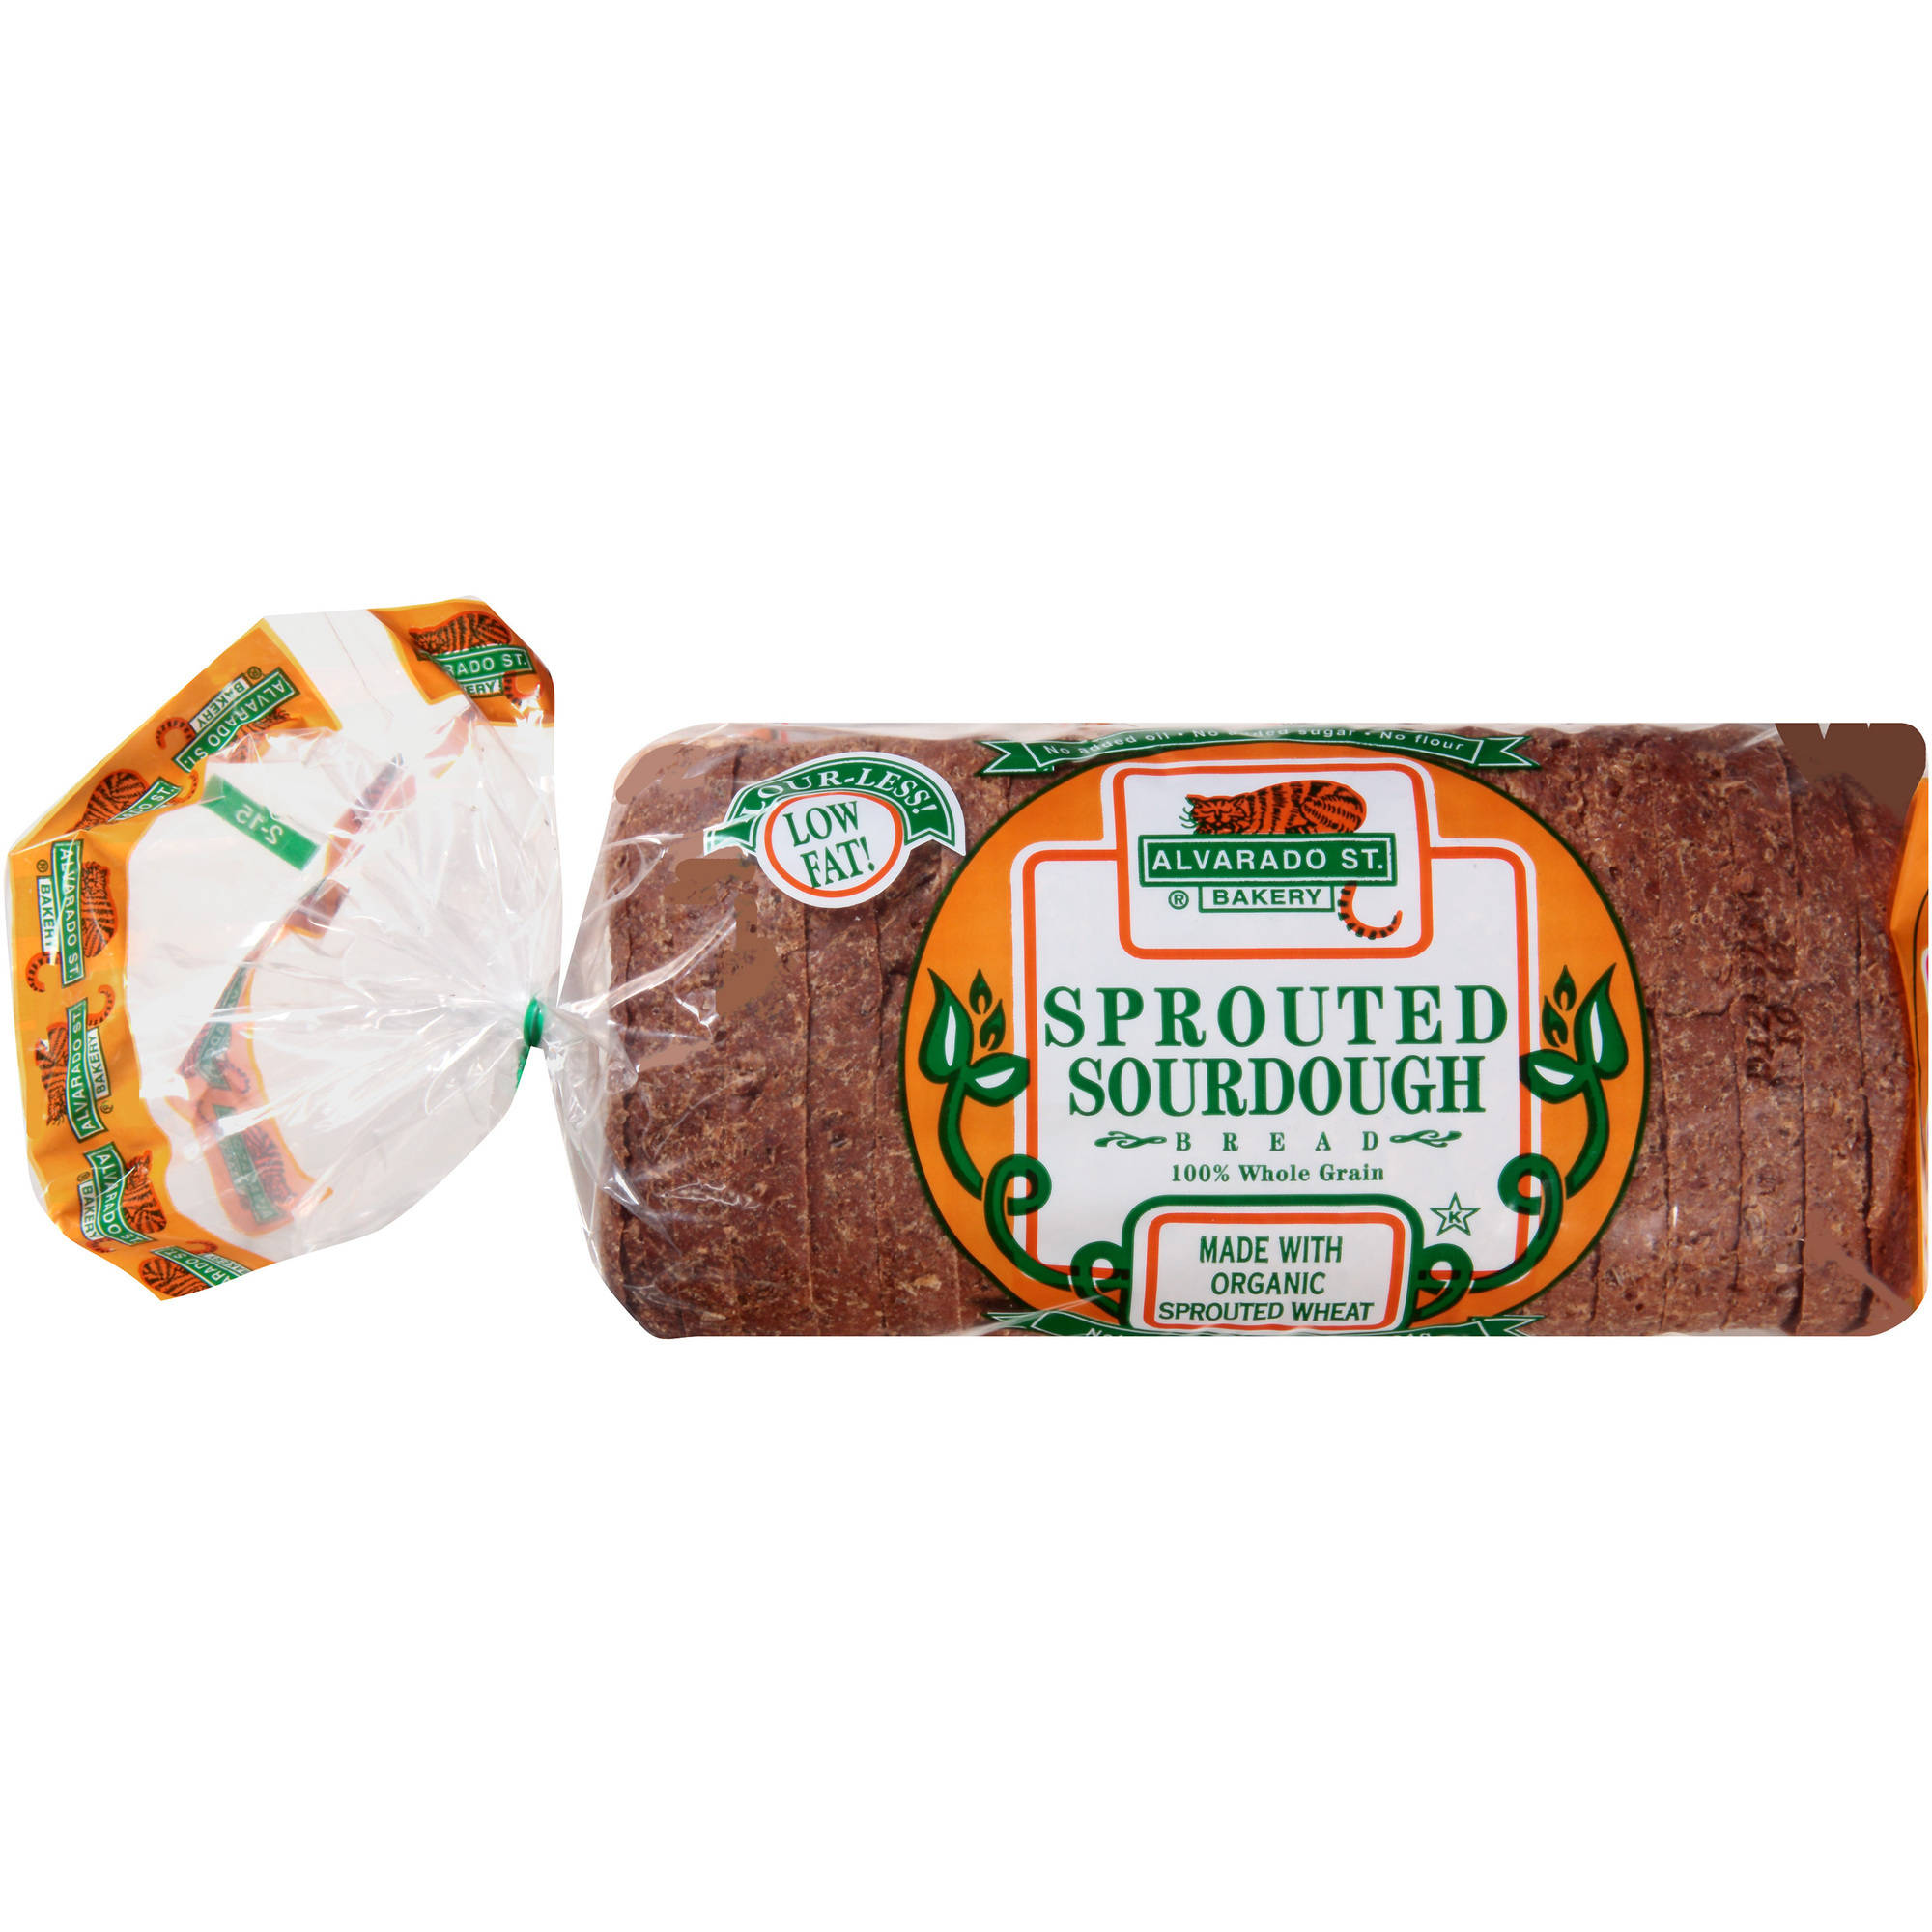 Alvarado Street Bakery Sprouted Sourdough Bread 24 oz